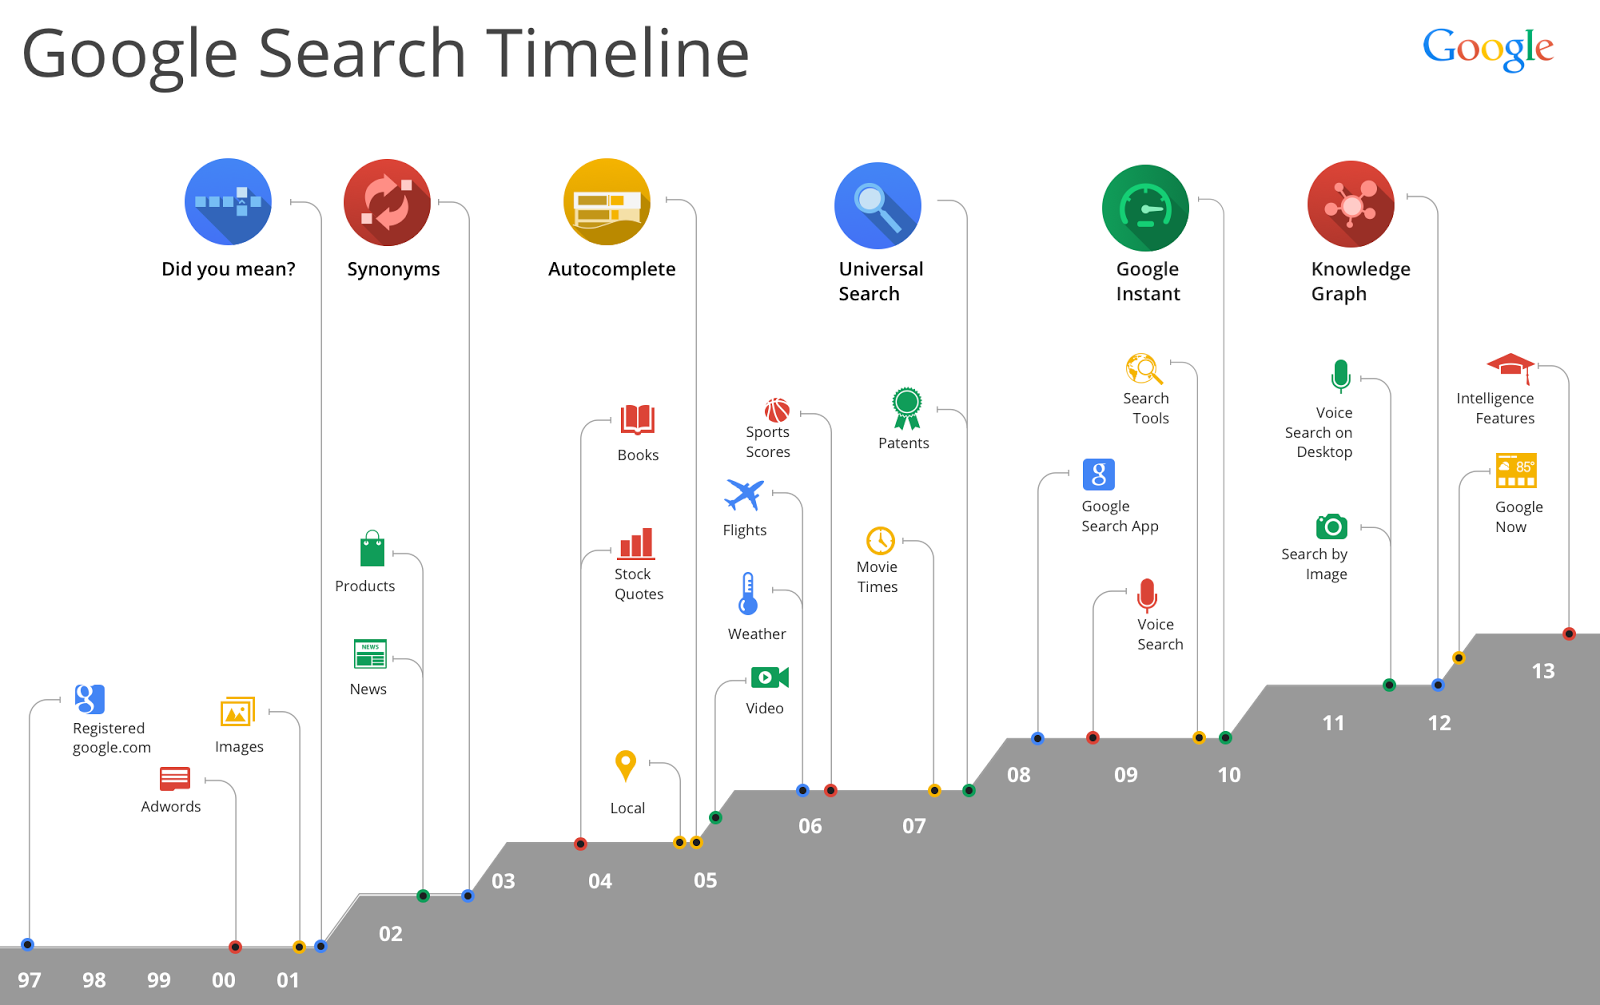 Search Timeline 1997 - 2013